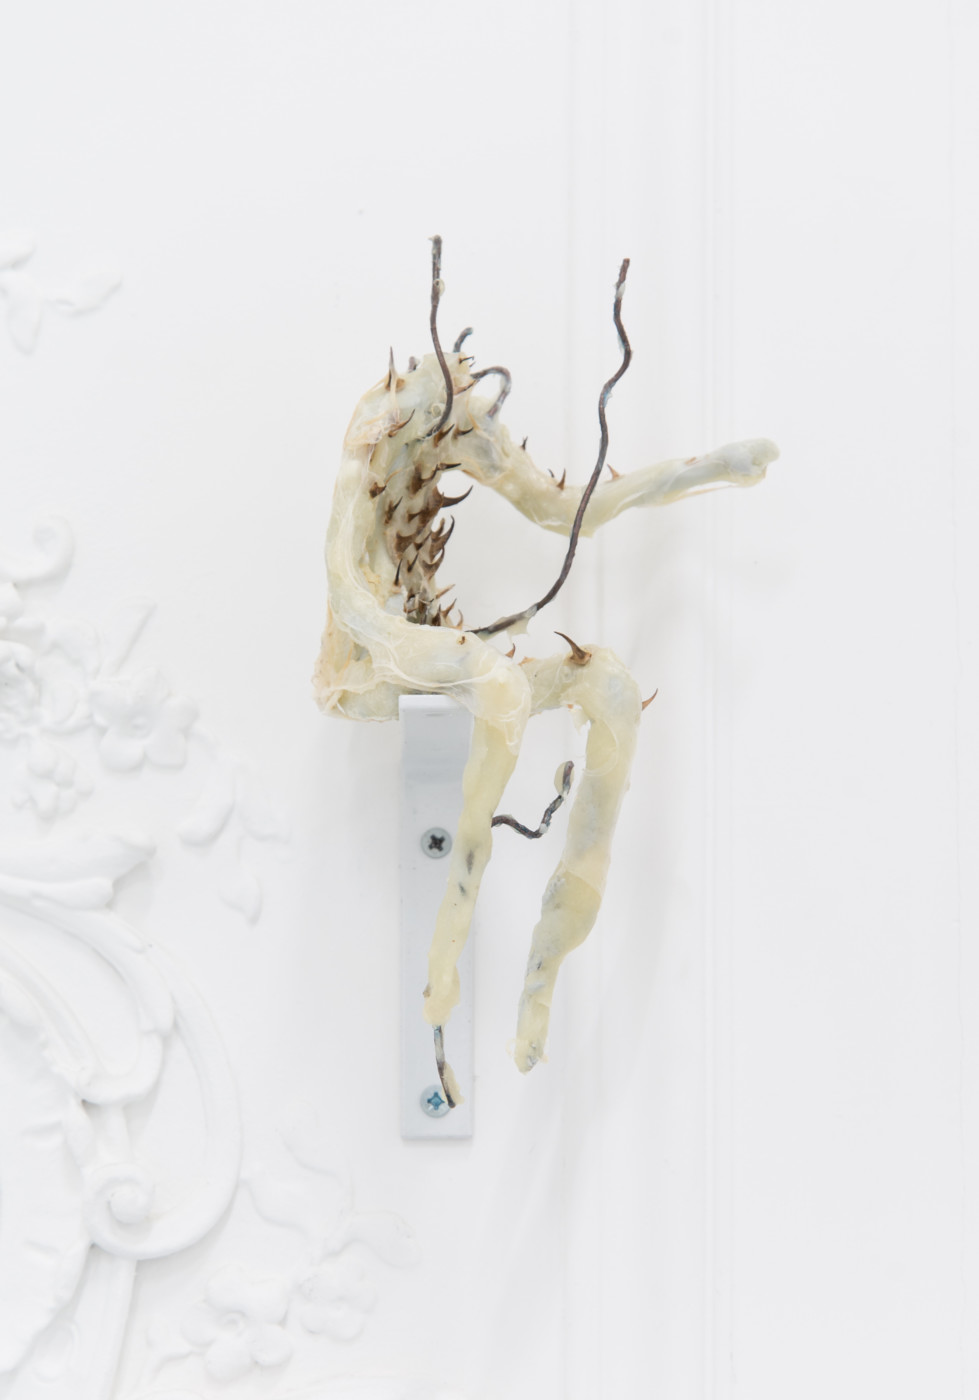 DEEPER THAN INSIDE Rolf Nowotny  Of Things Blooming at Night</I>, 2018 Epoxy, tin foil, copper and steel wire, thorns and plastic foil 20 x 10 x 10 cm / 7.9 x 3.9 x 3.9 in Theodora Allen  Olga Balema  Adam Gordon  Tom Humphreys  Dawn Mellor  Ragen Moss  Rolf Nowotny  Benjamin Reiss  Dylan Vandenhoeck